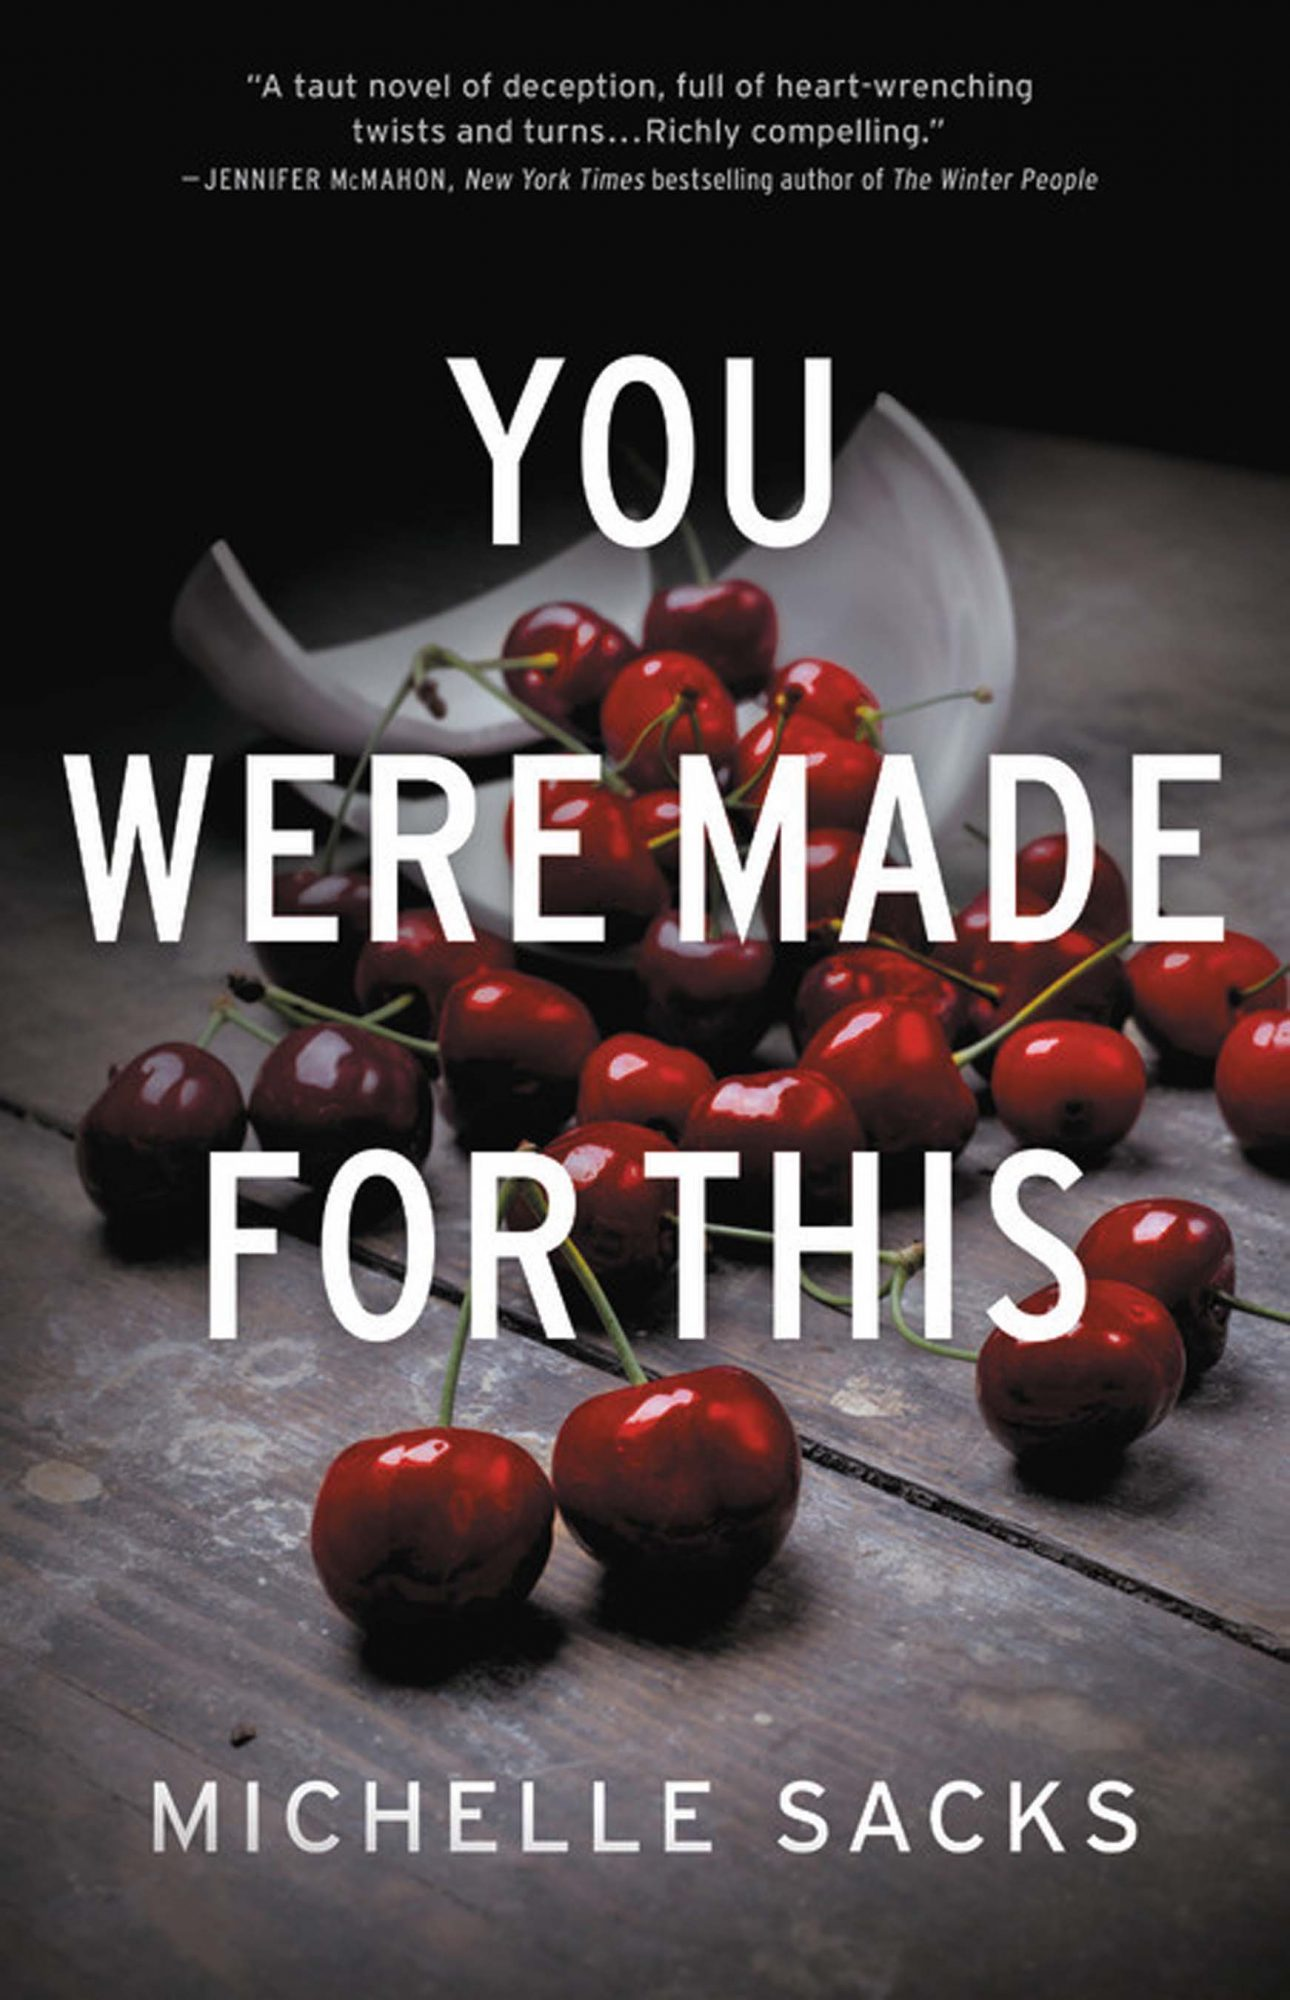 You Were Made for This by Michelle Sacks